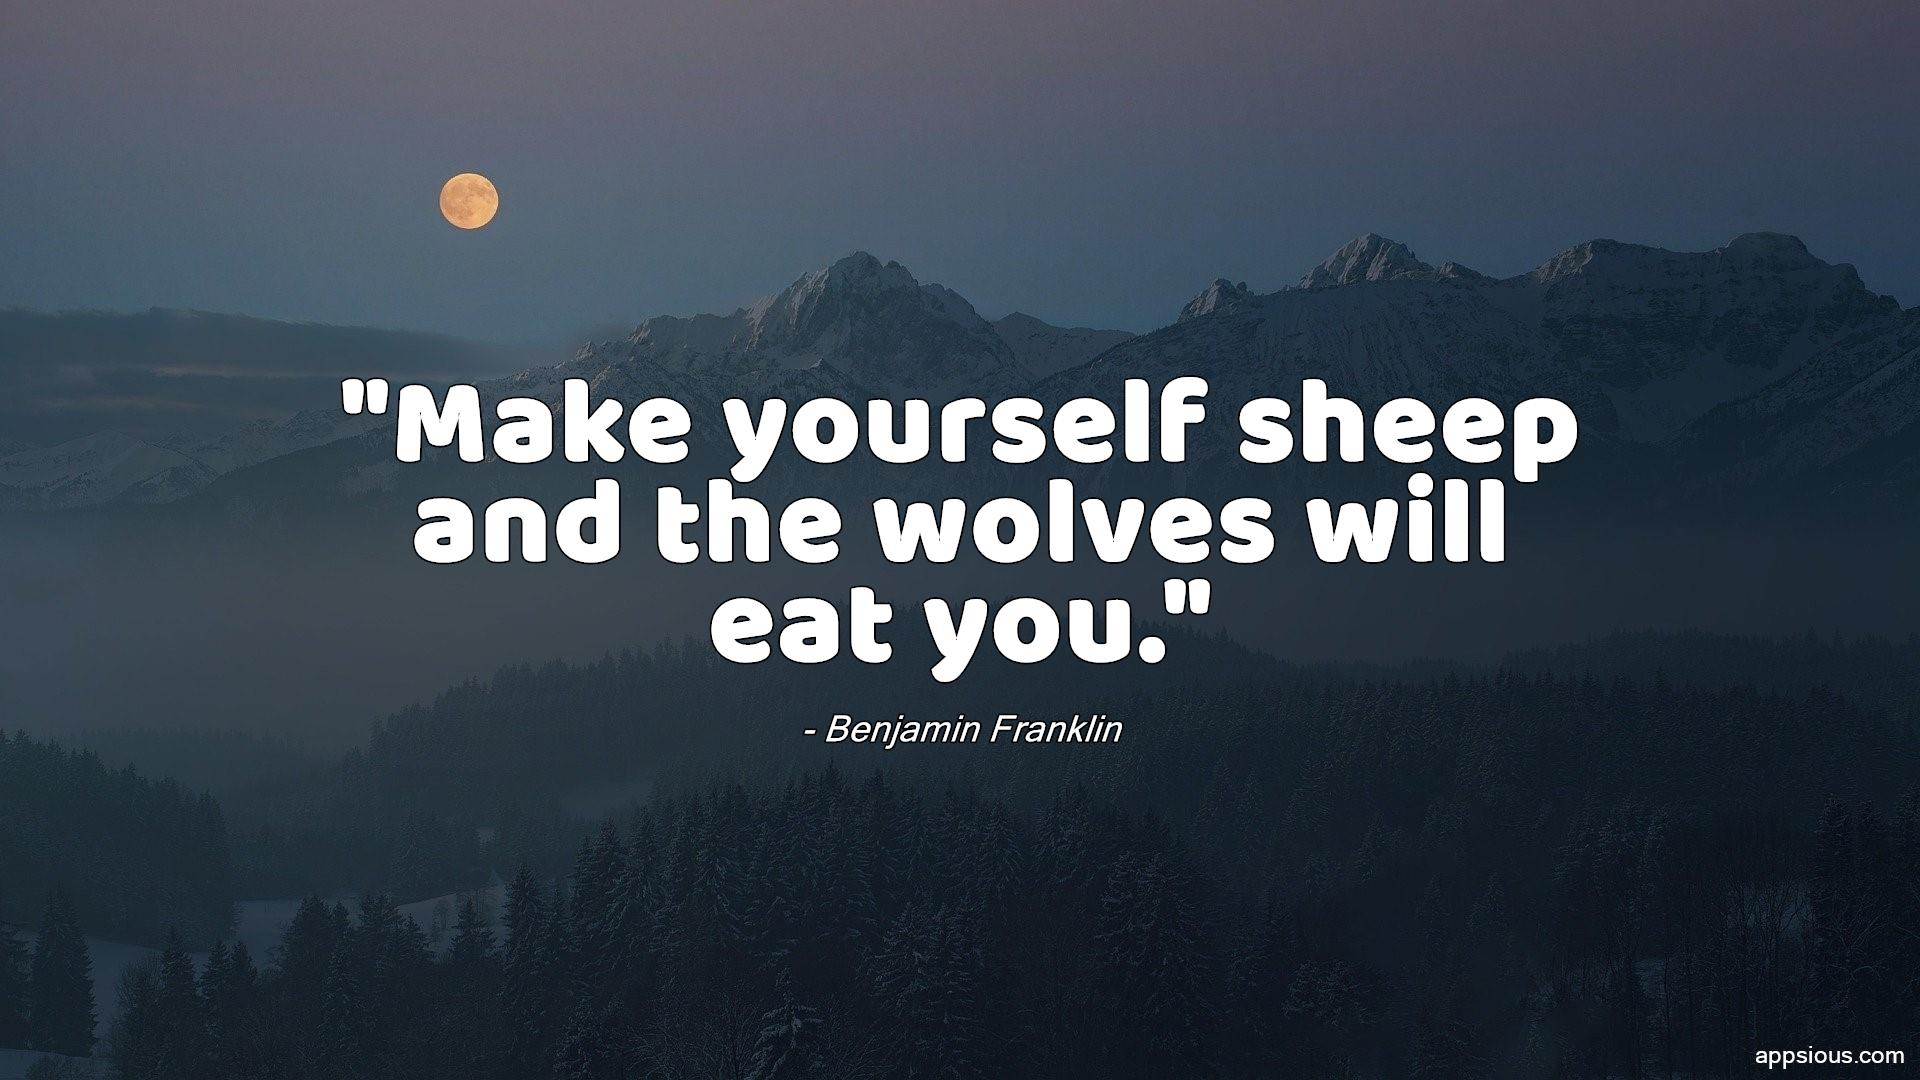 Make yourself sheep and the wolves will eat you.